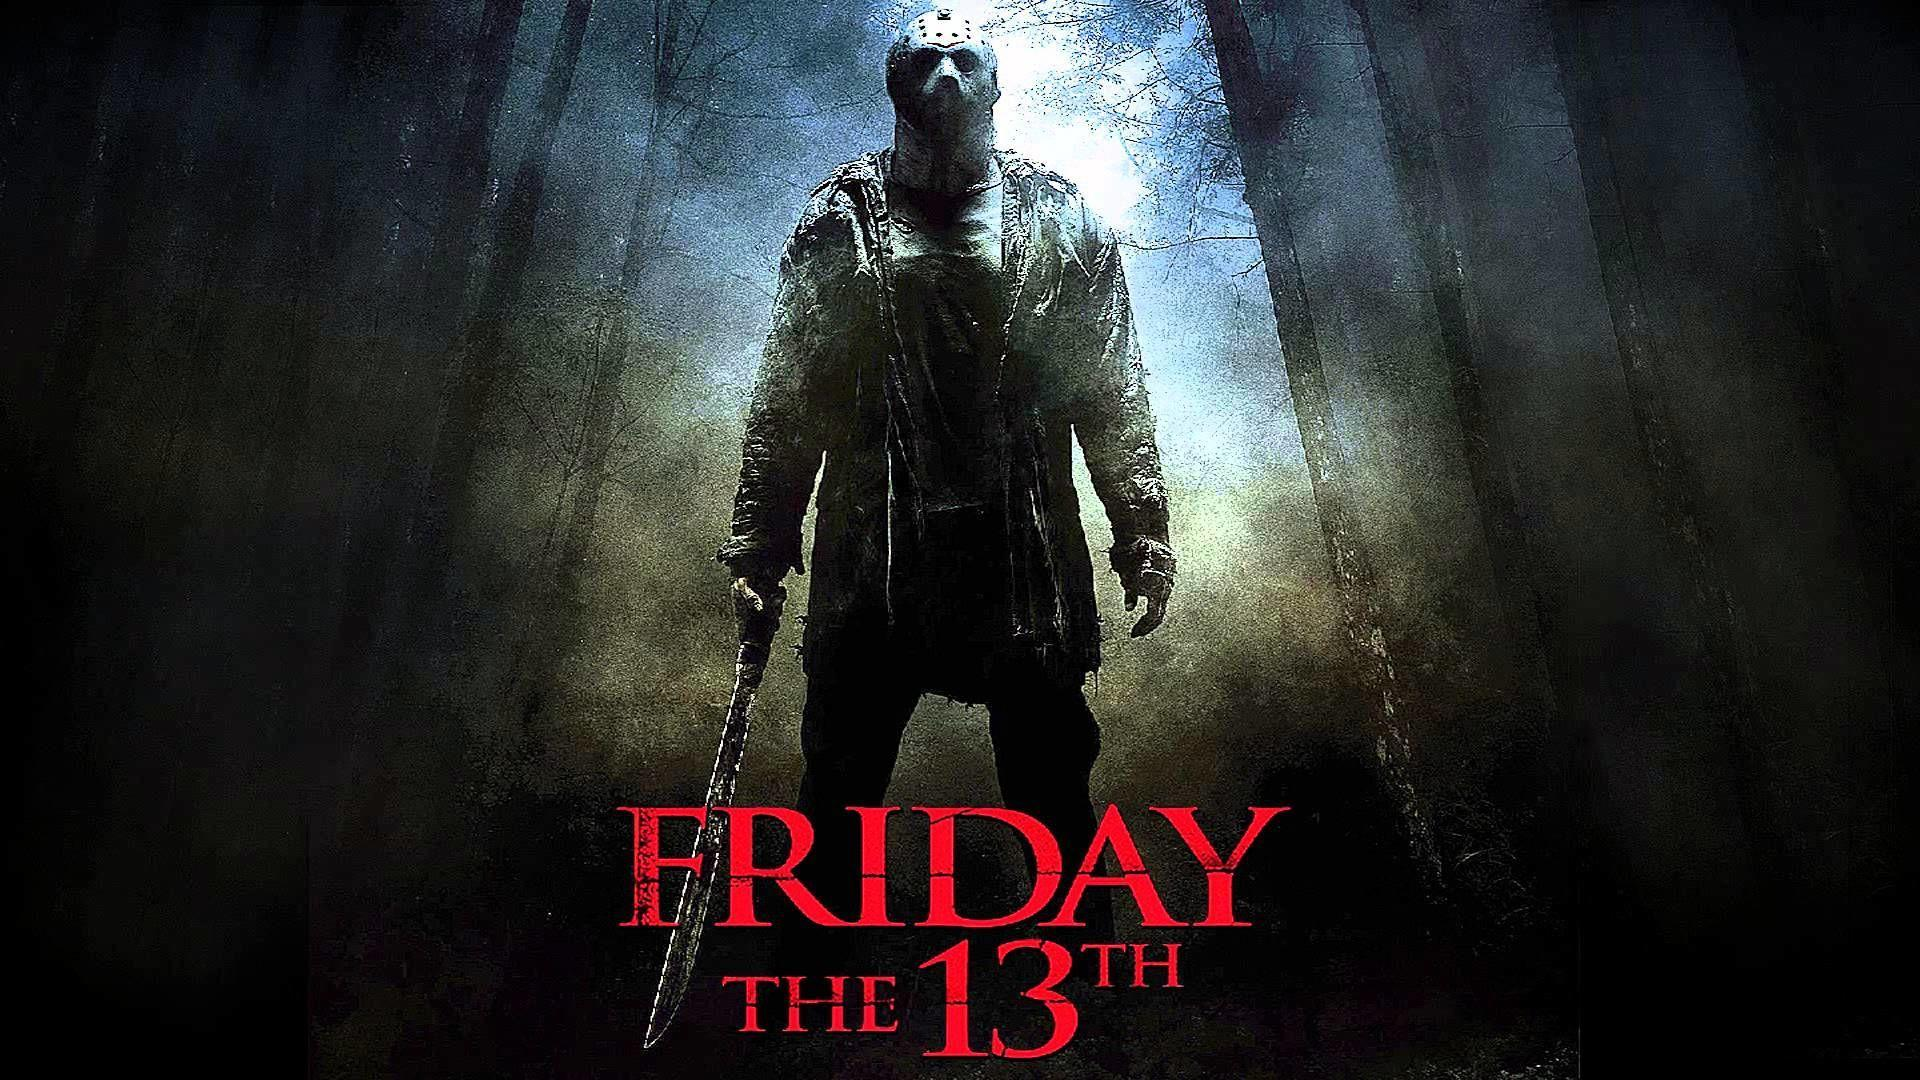 It's Friday the 13th! >:) I hope you all just enjoy your day wonderfully ;) #fridaythe13